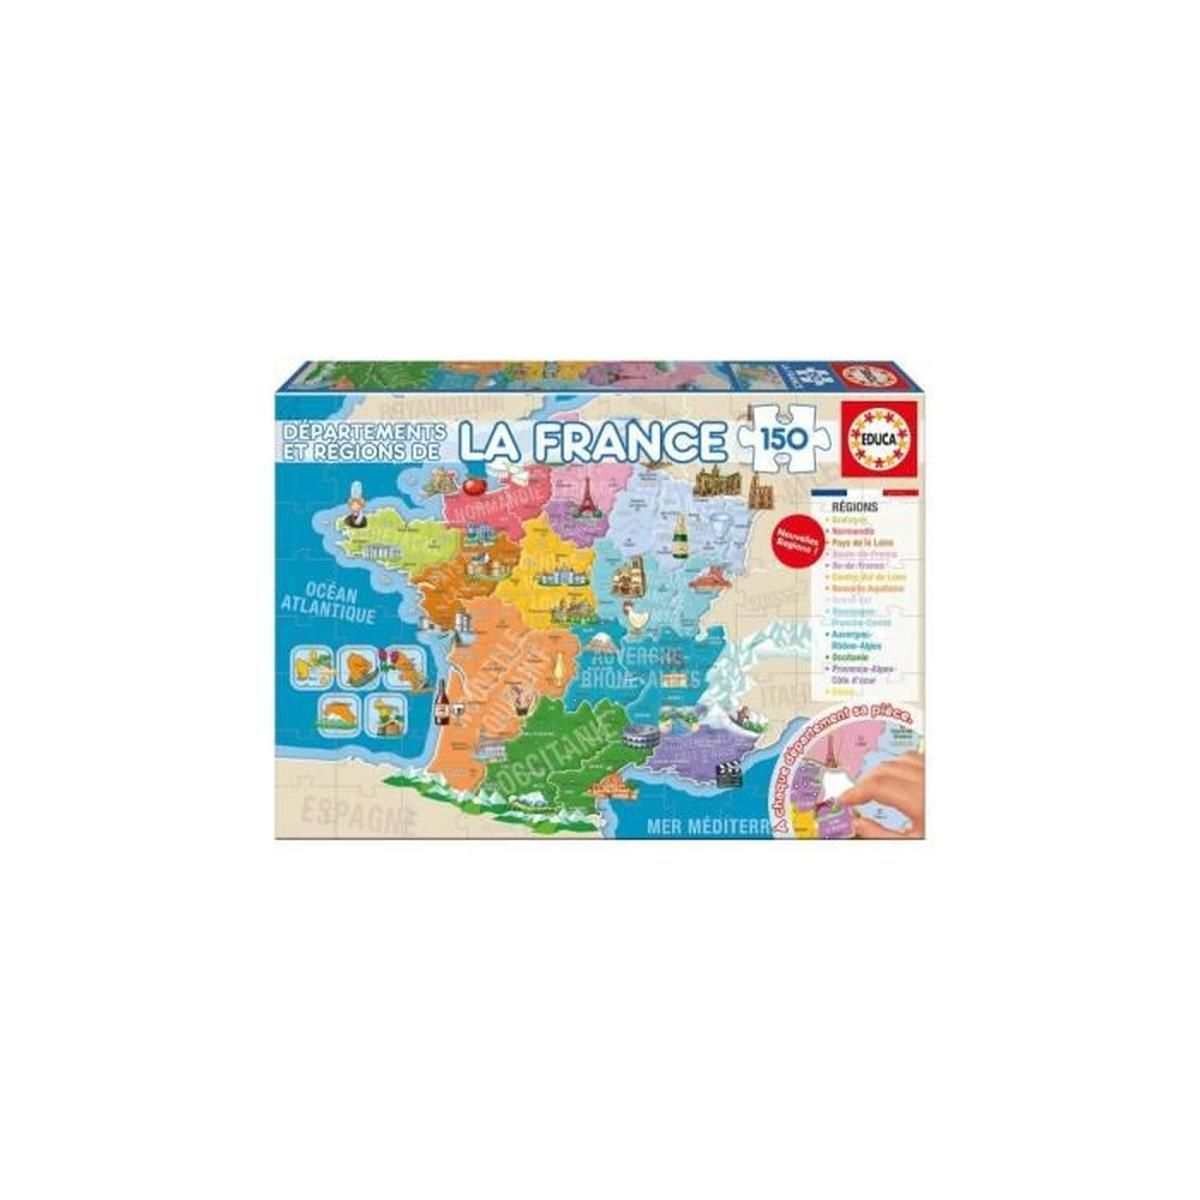 Puzzle Enfant - Carte De France : Les Departements Et Regions - 150 Pieces  - Jeu Educatifs destiné Acheter Carte De France